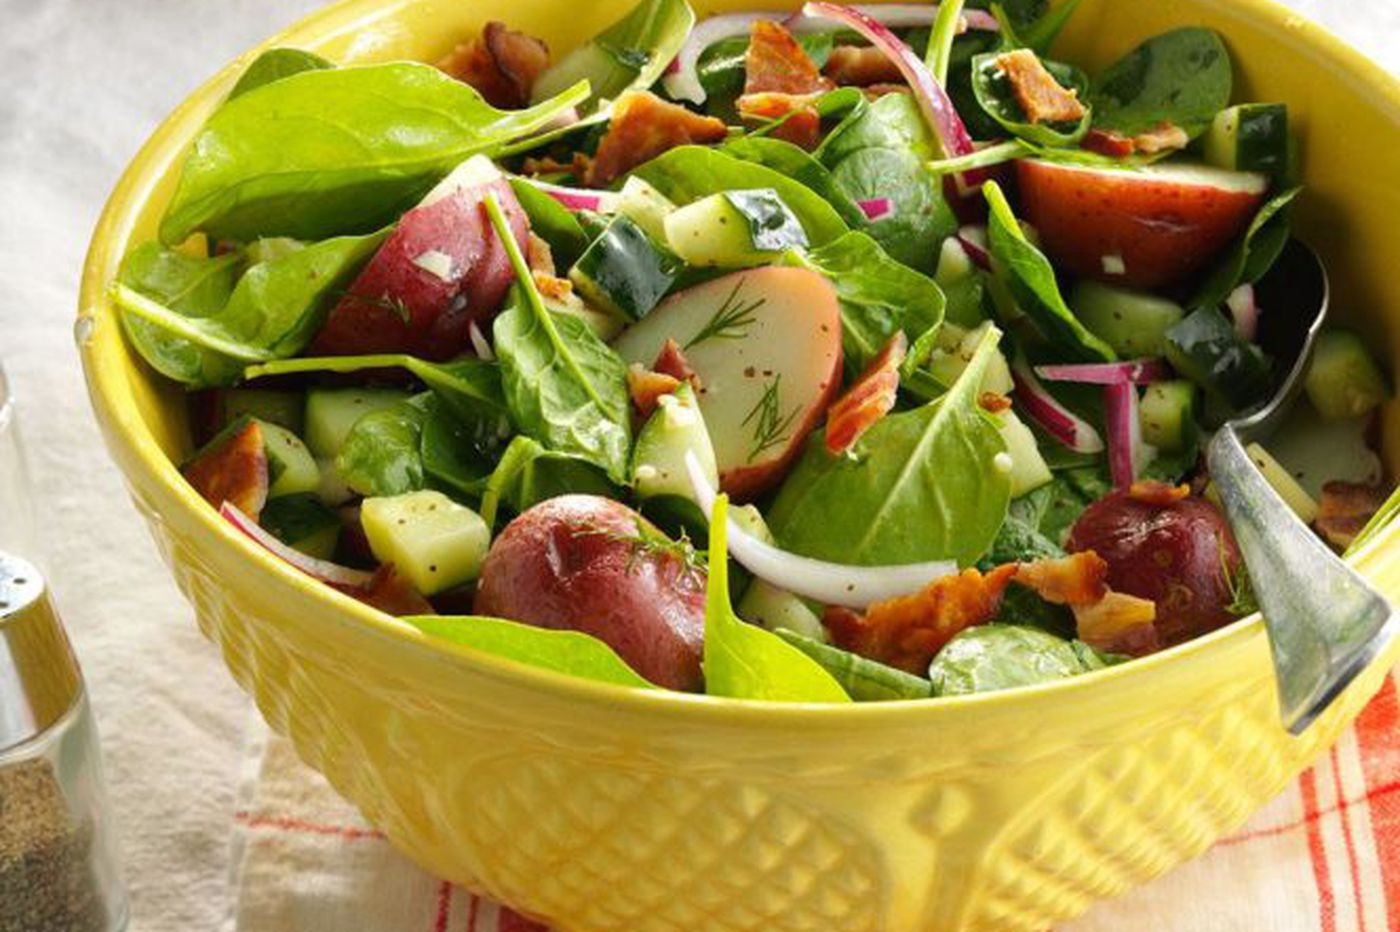 8 Romaine-less Thanksgiving salad recipes to make after the CDC's e coli warning